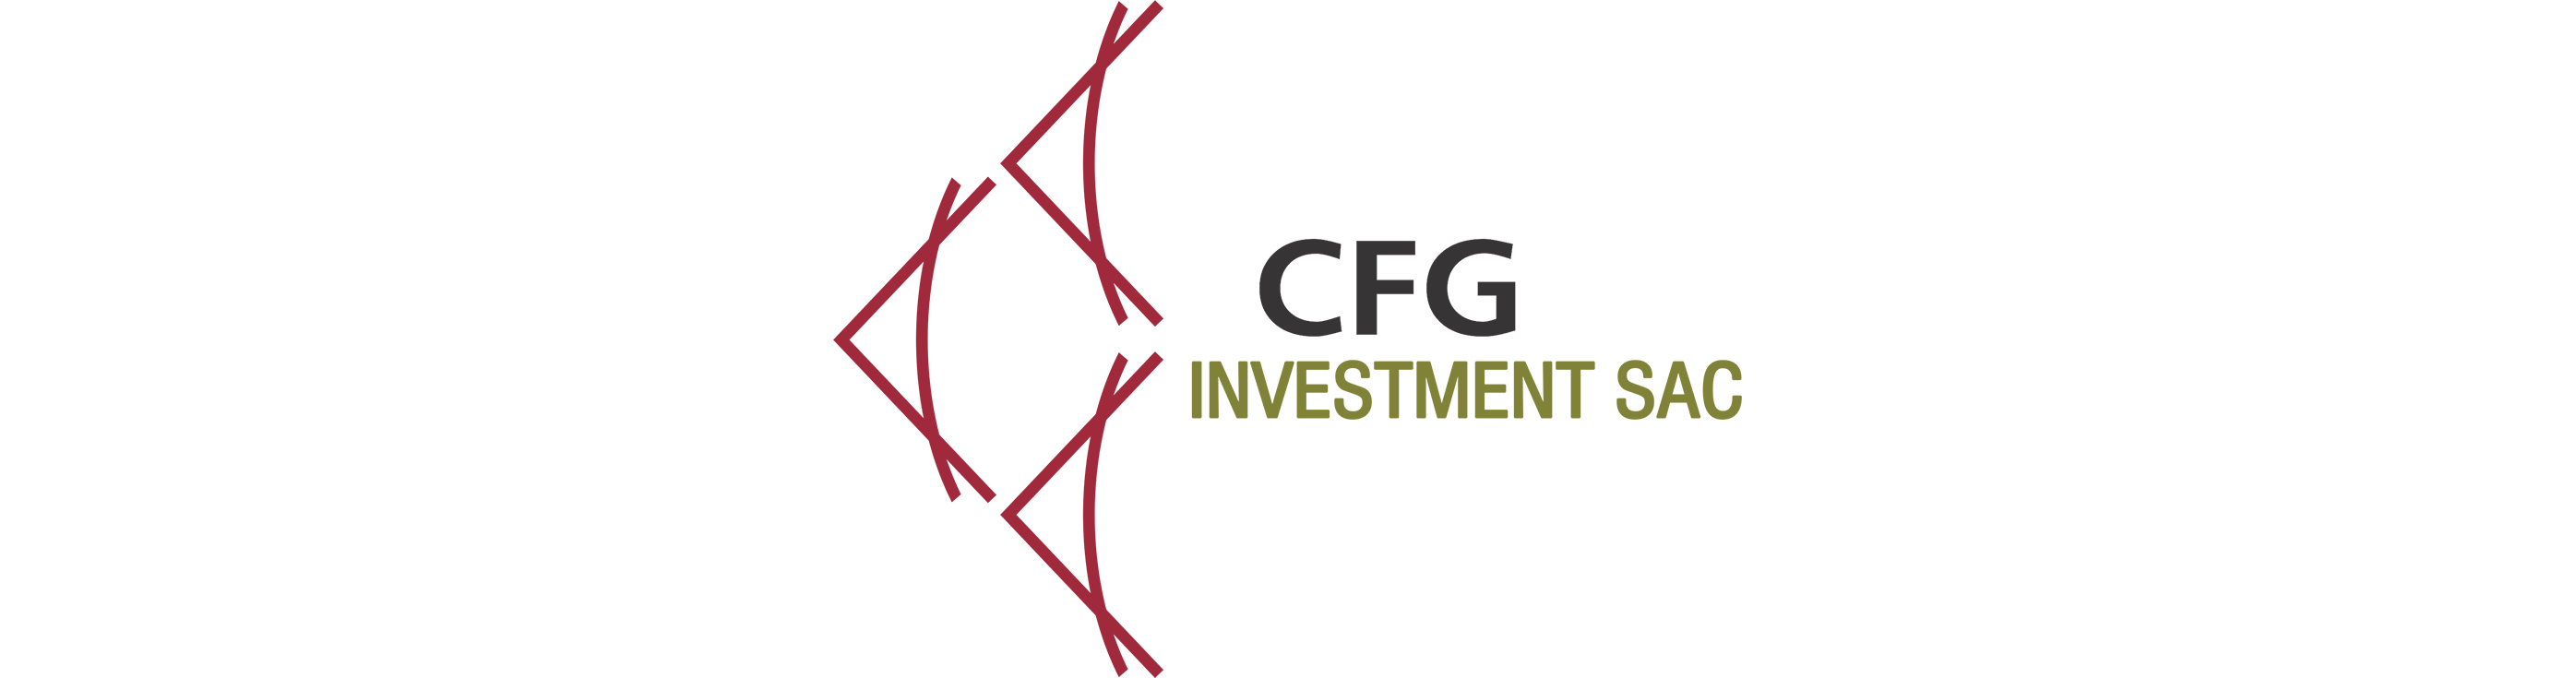 Cfg investment s.a.c andy bechtolsheim google investment